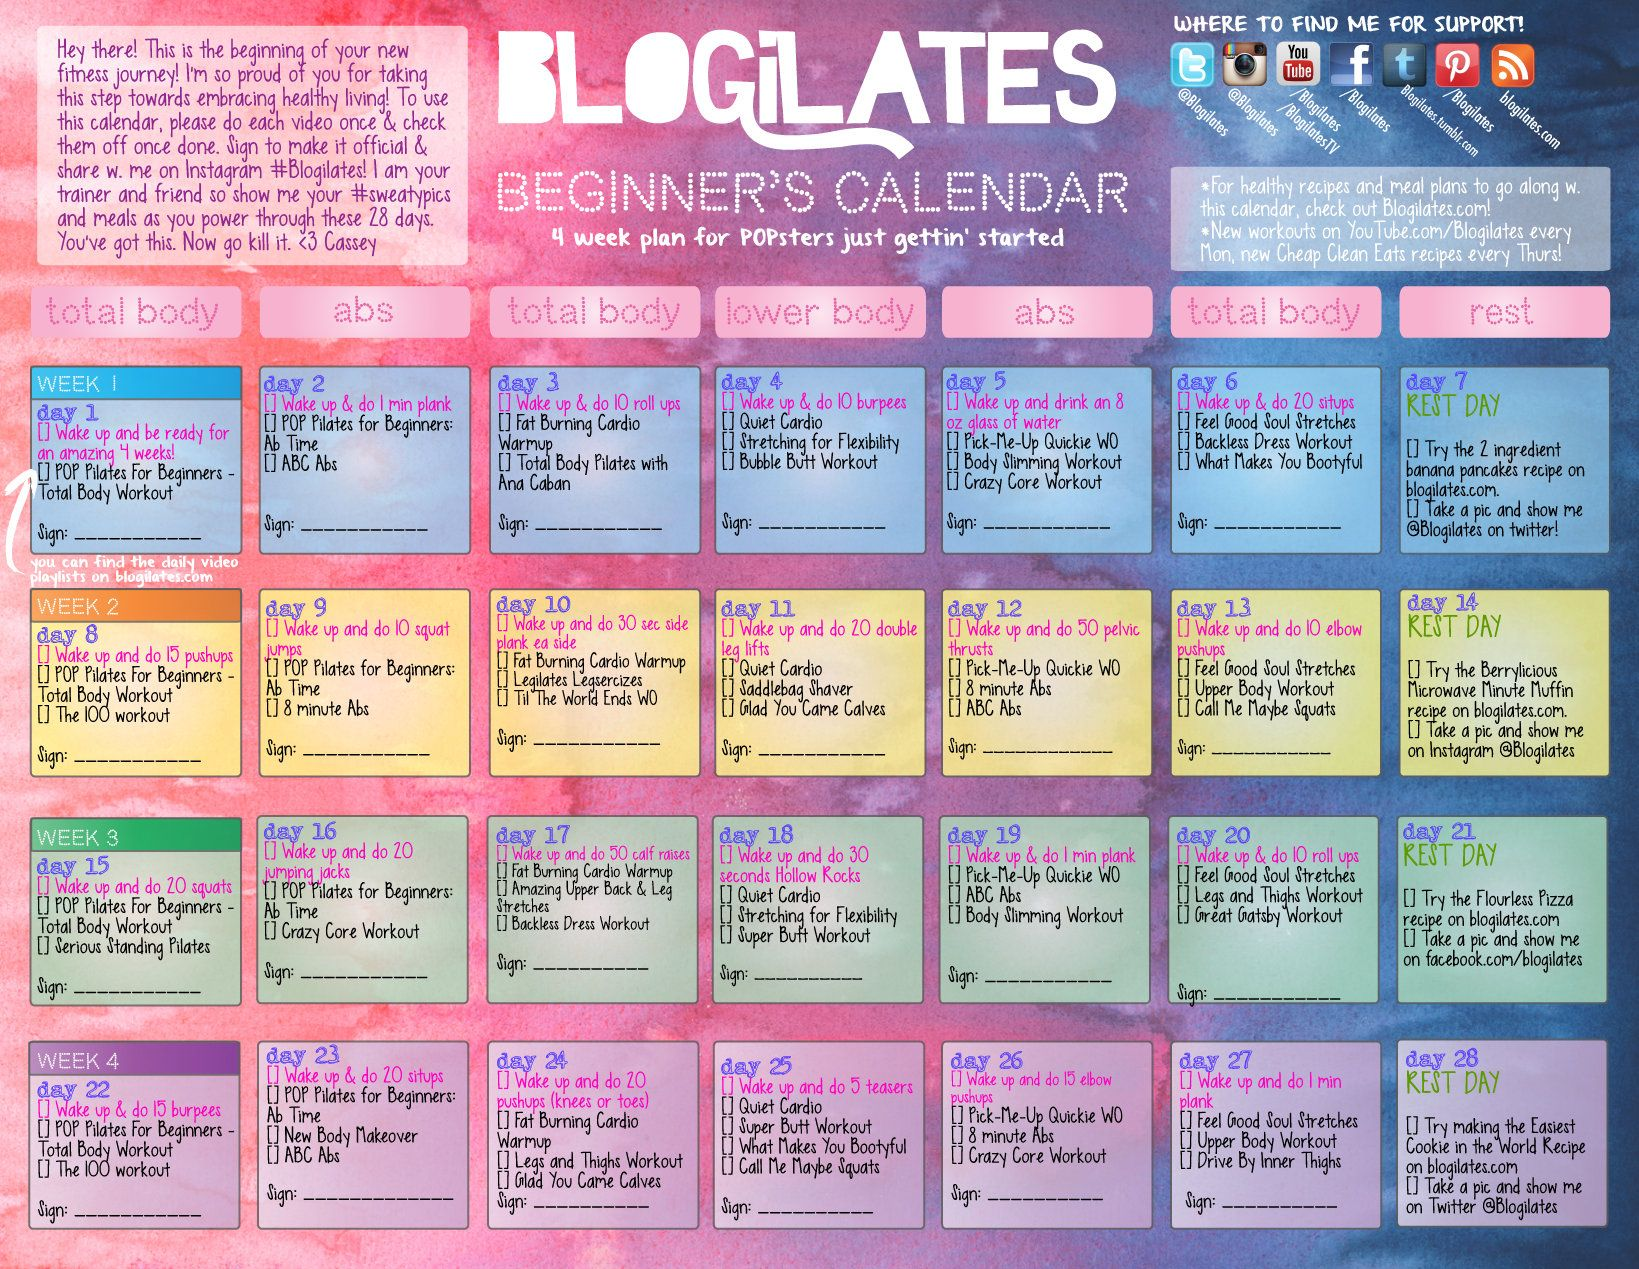 blogilates beginners calendar!!! Free youtube workouts from Cassey